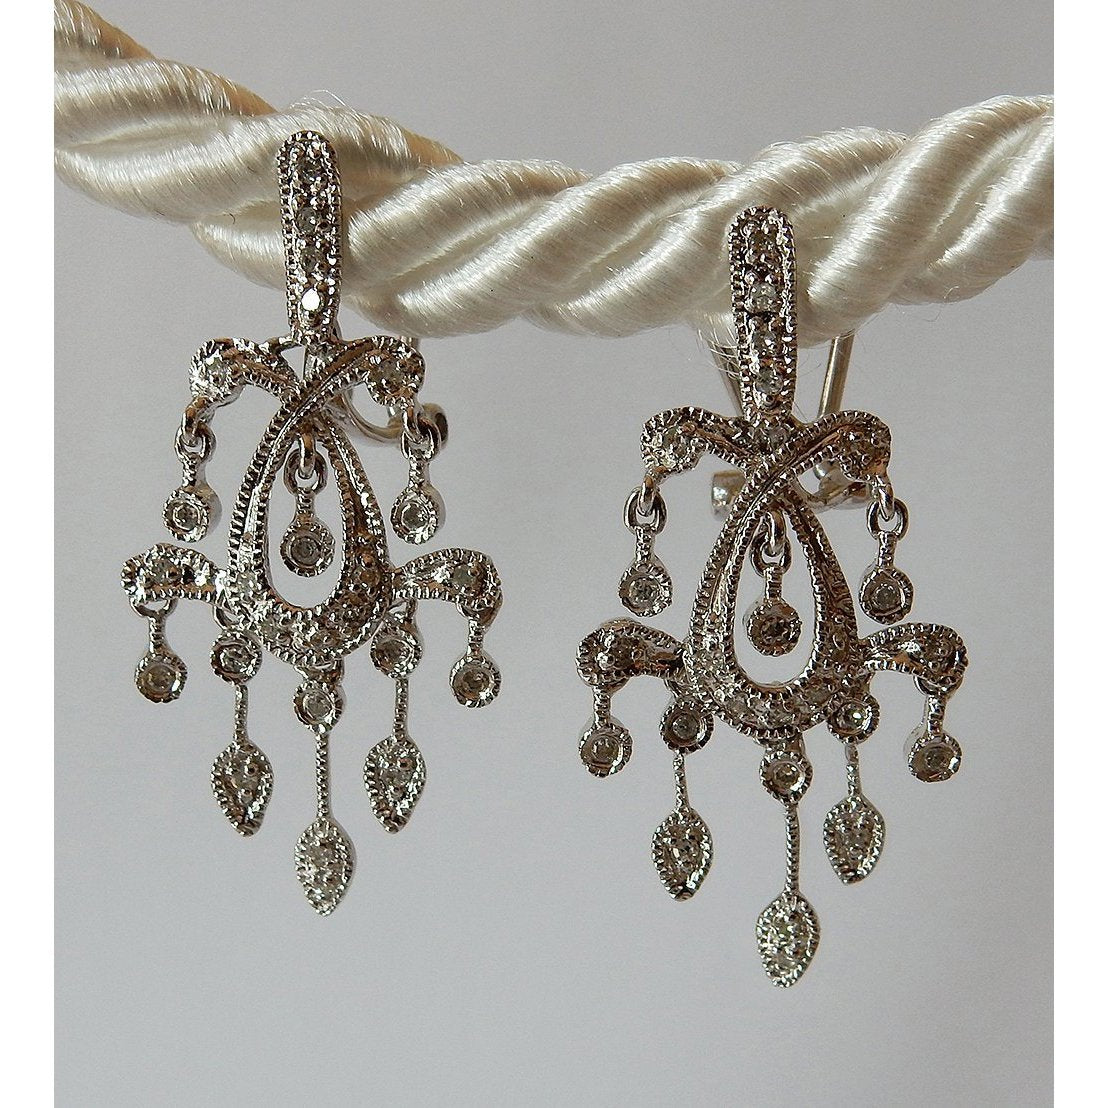 1.5 Carats Diamond Chandelier Earrings White Gold Chandelier Earring